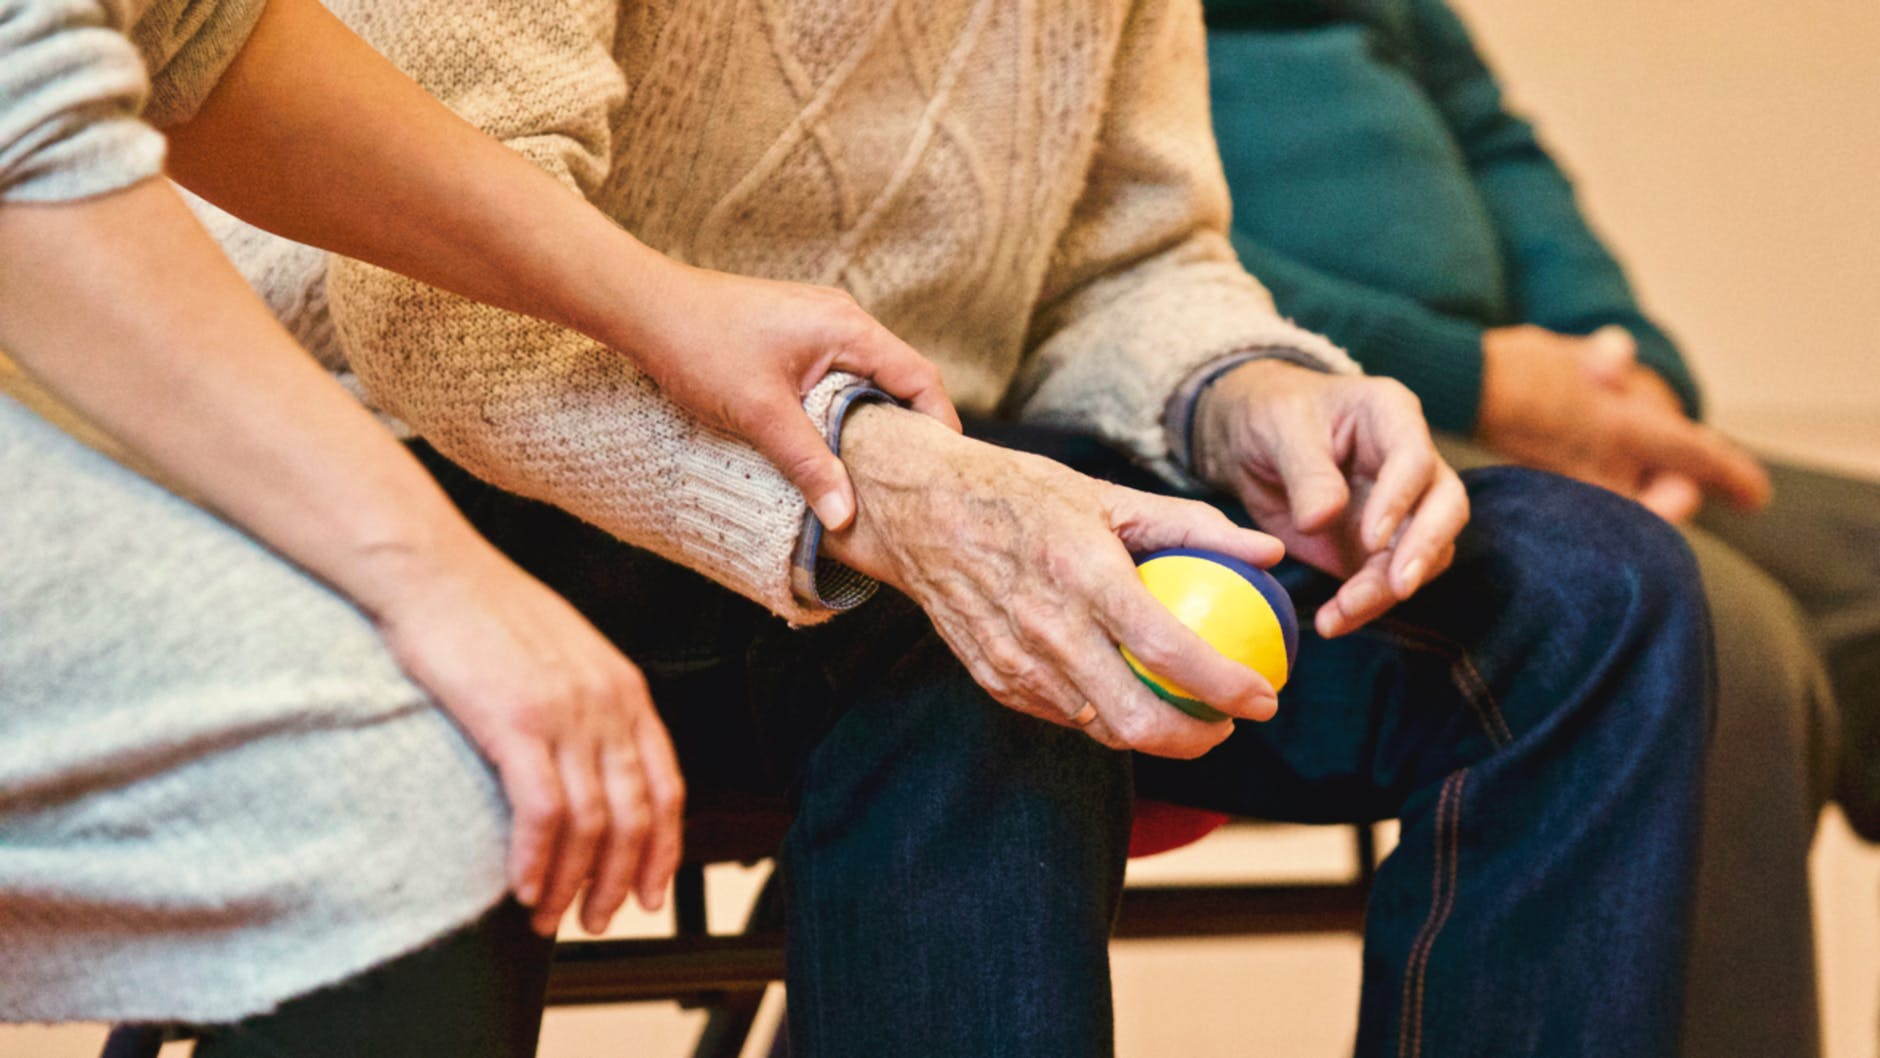 Home Healthcare Market Statistics Growth and Trends 2020- Global Industry Report Share, Development Trends, Key Manufactures, Regional Outlook and Forecast to 2023